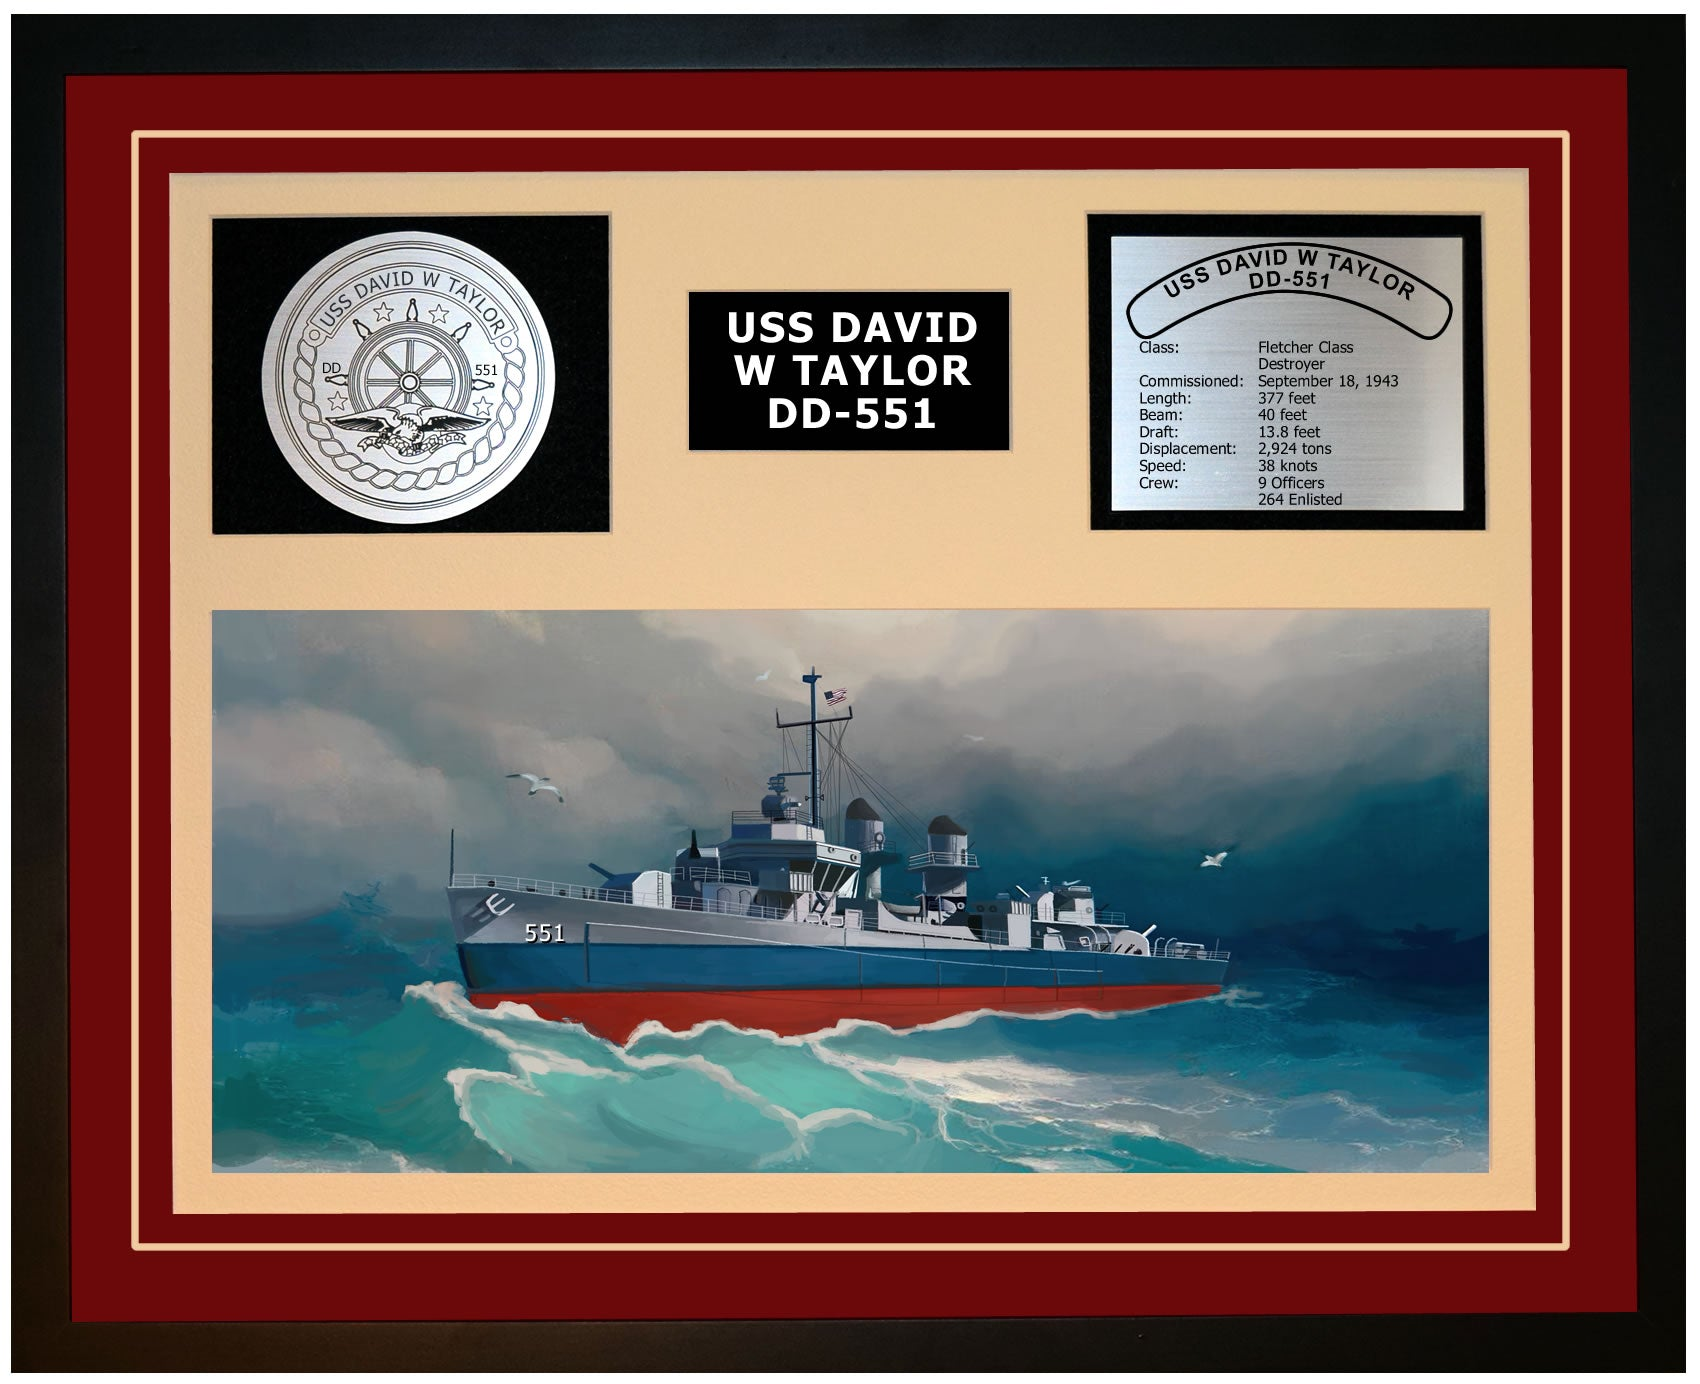 USS DAVID W TAYLOR DD-551 Framed Navy Ship Display Burgundy